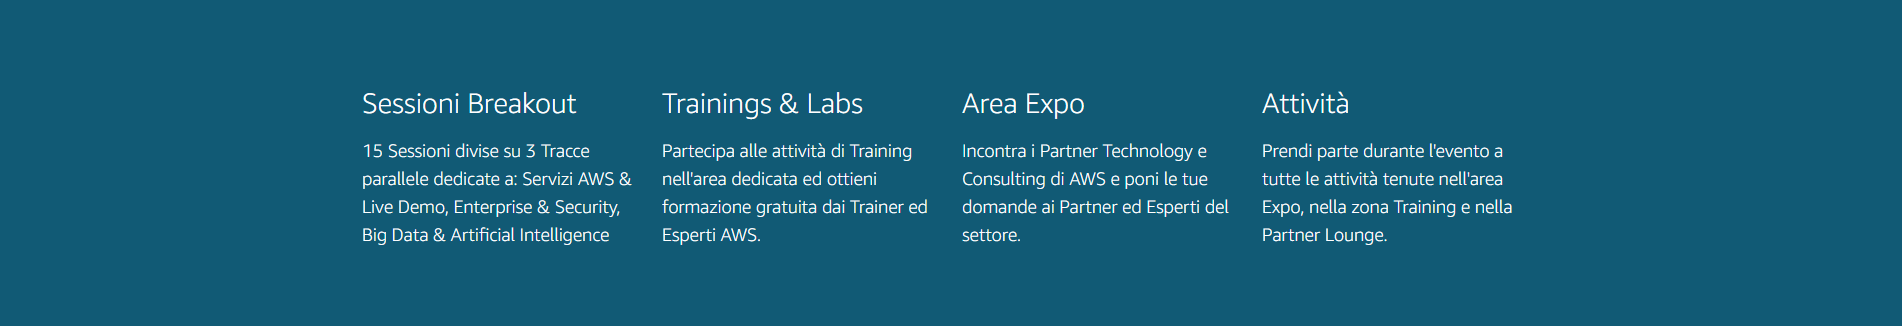 Amazon AWS Summit 2017 Attività